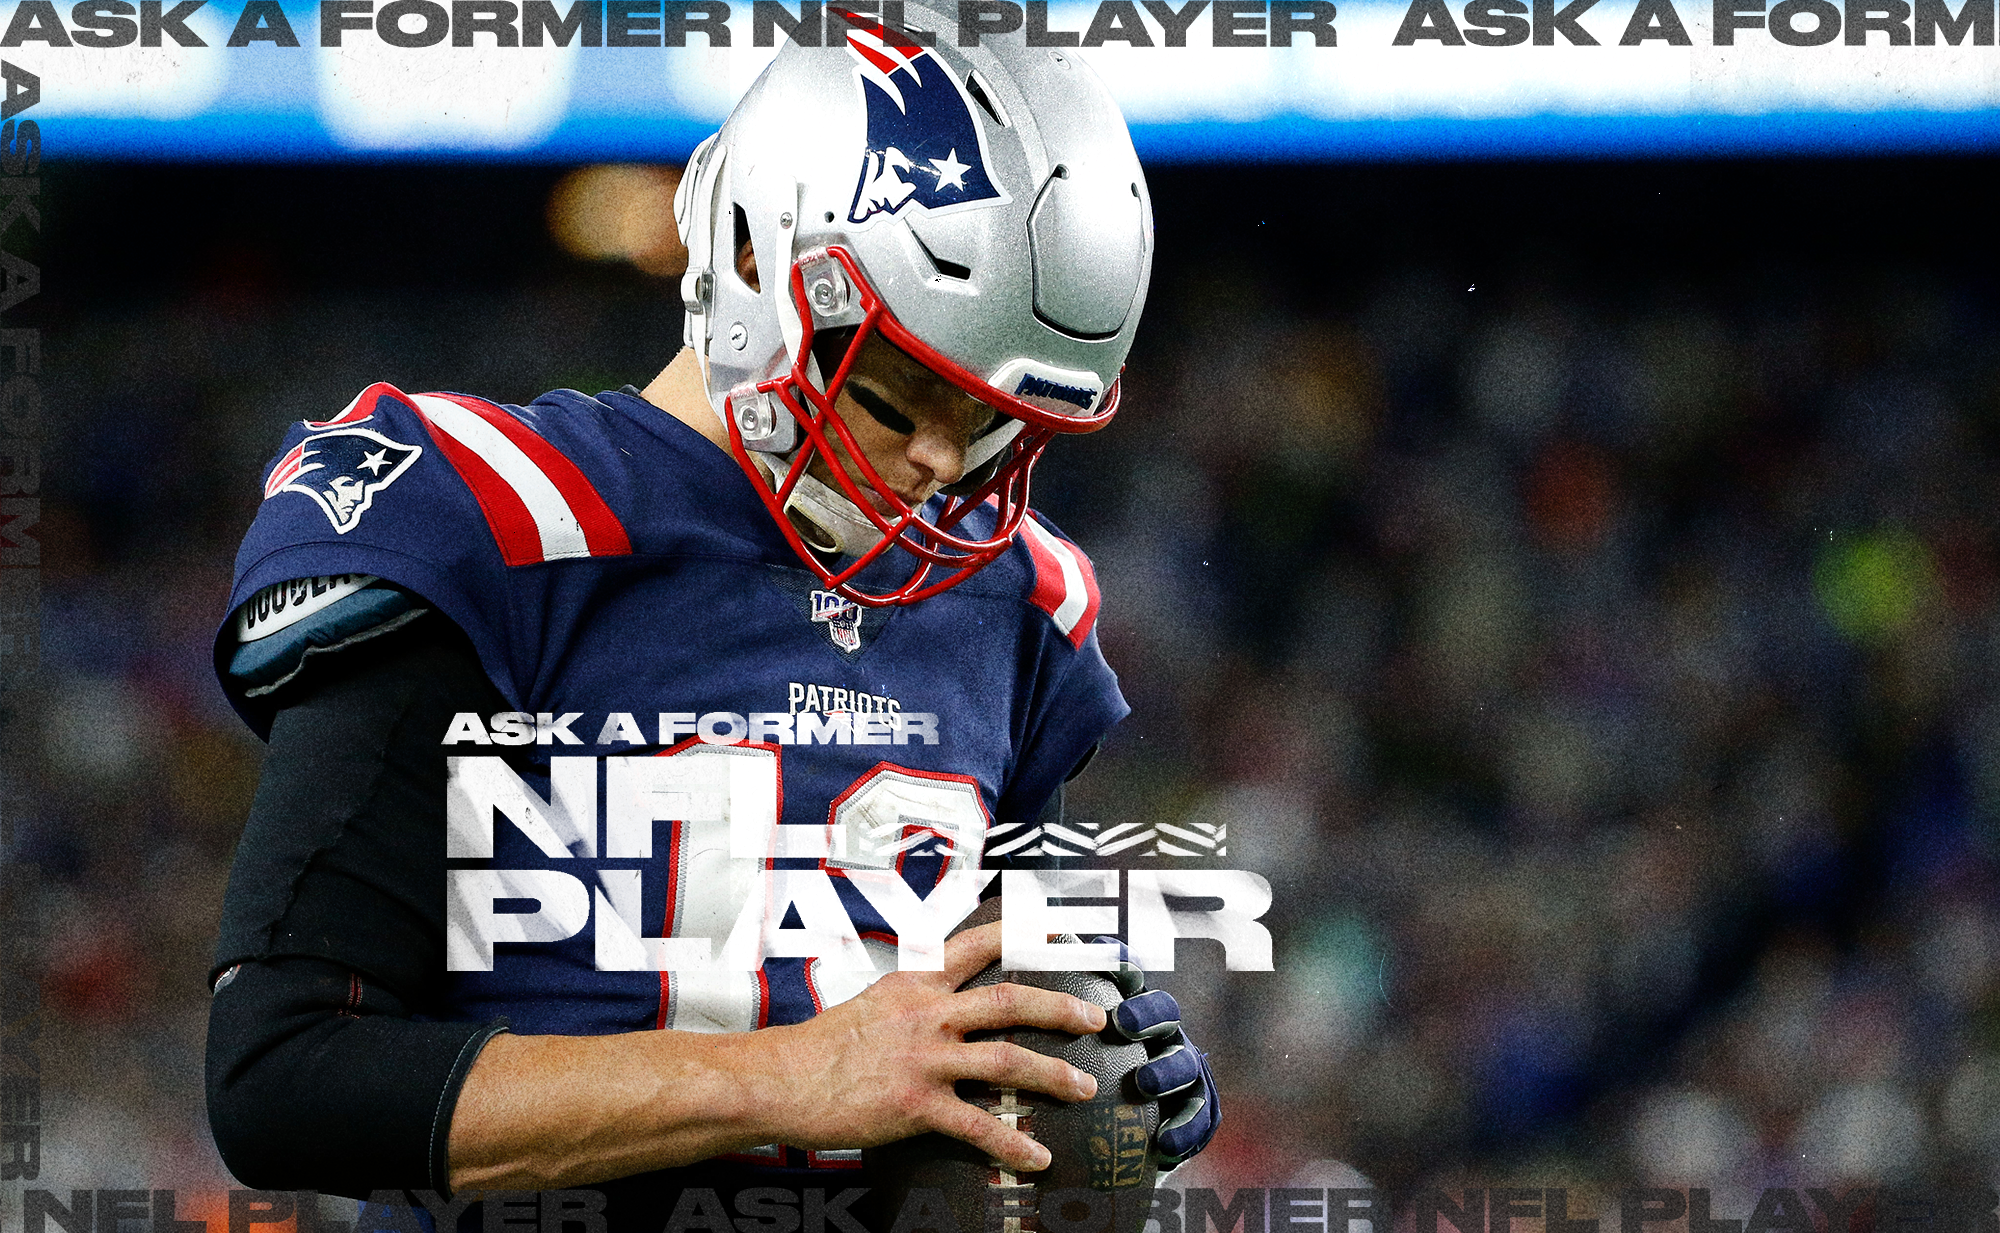 Patriots QB Tom Brady bows his head while gripping a football with both hands